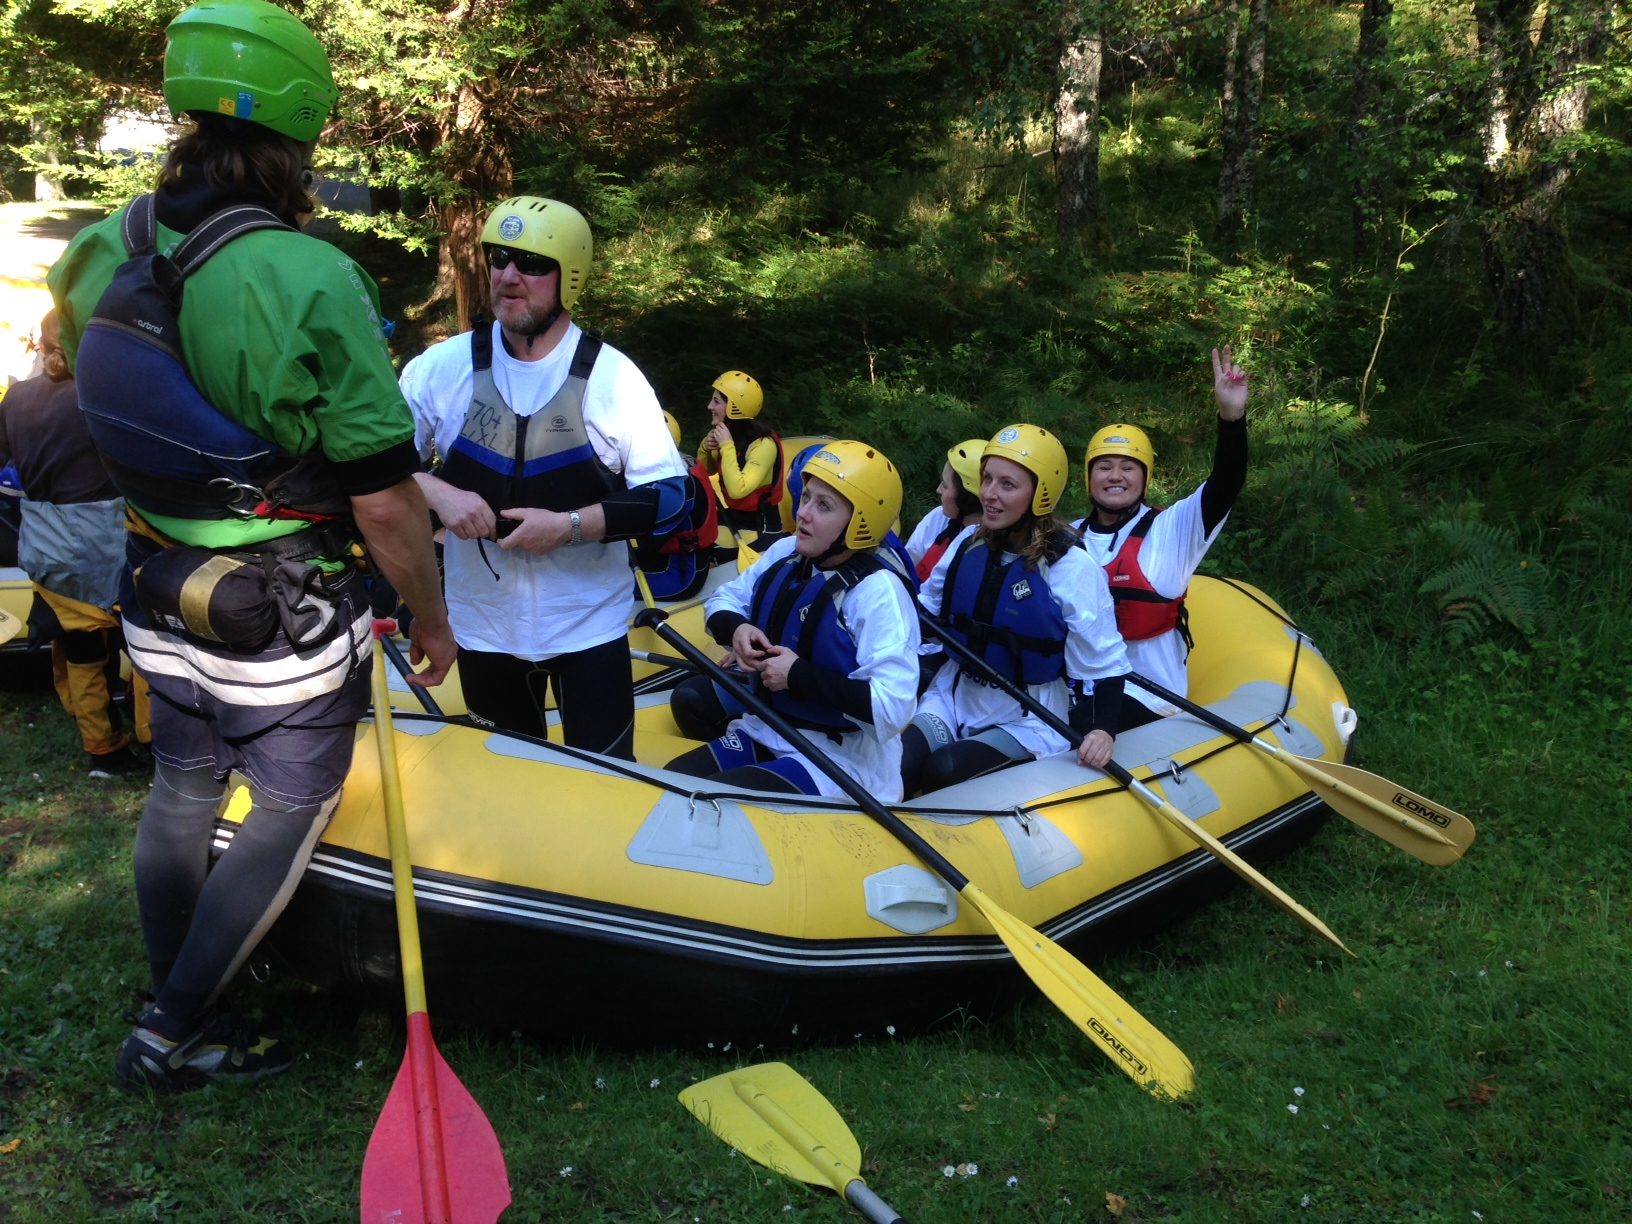 Be-IT goes white water rafting, with charitable intent...